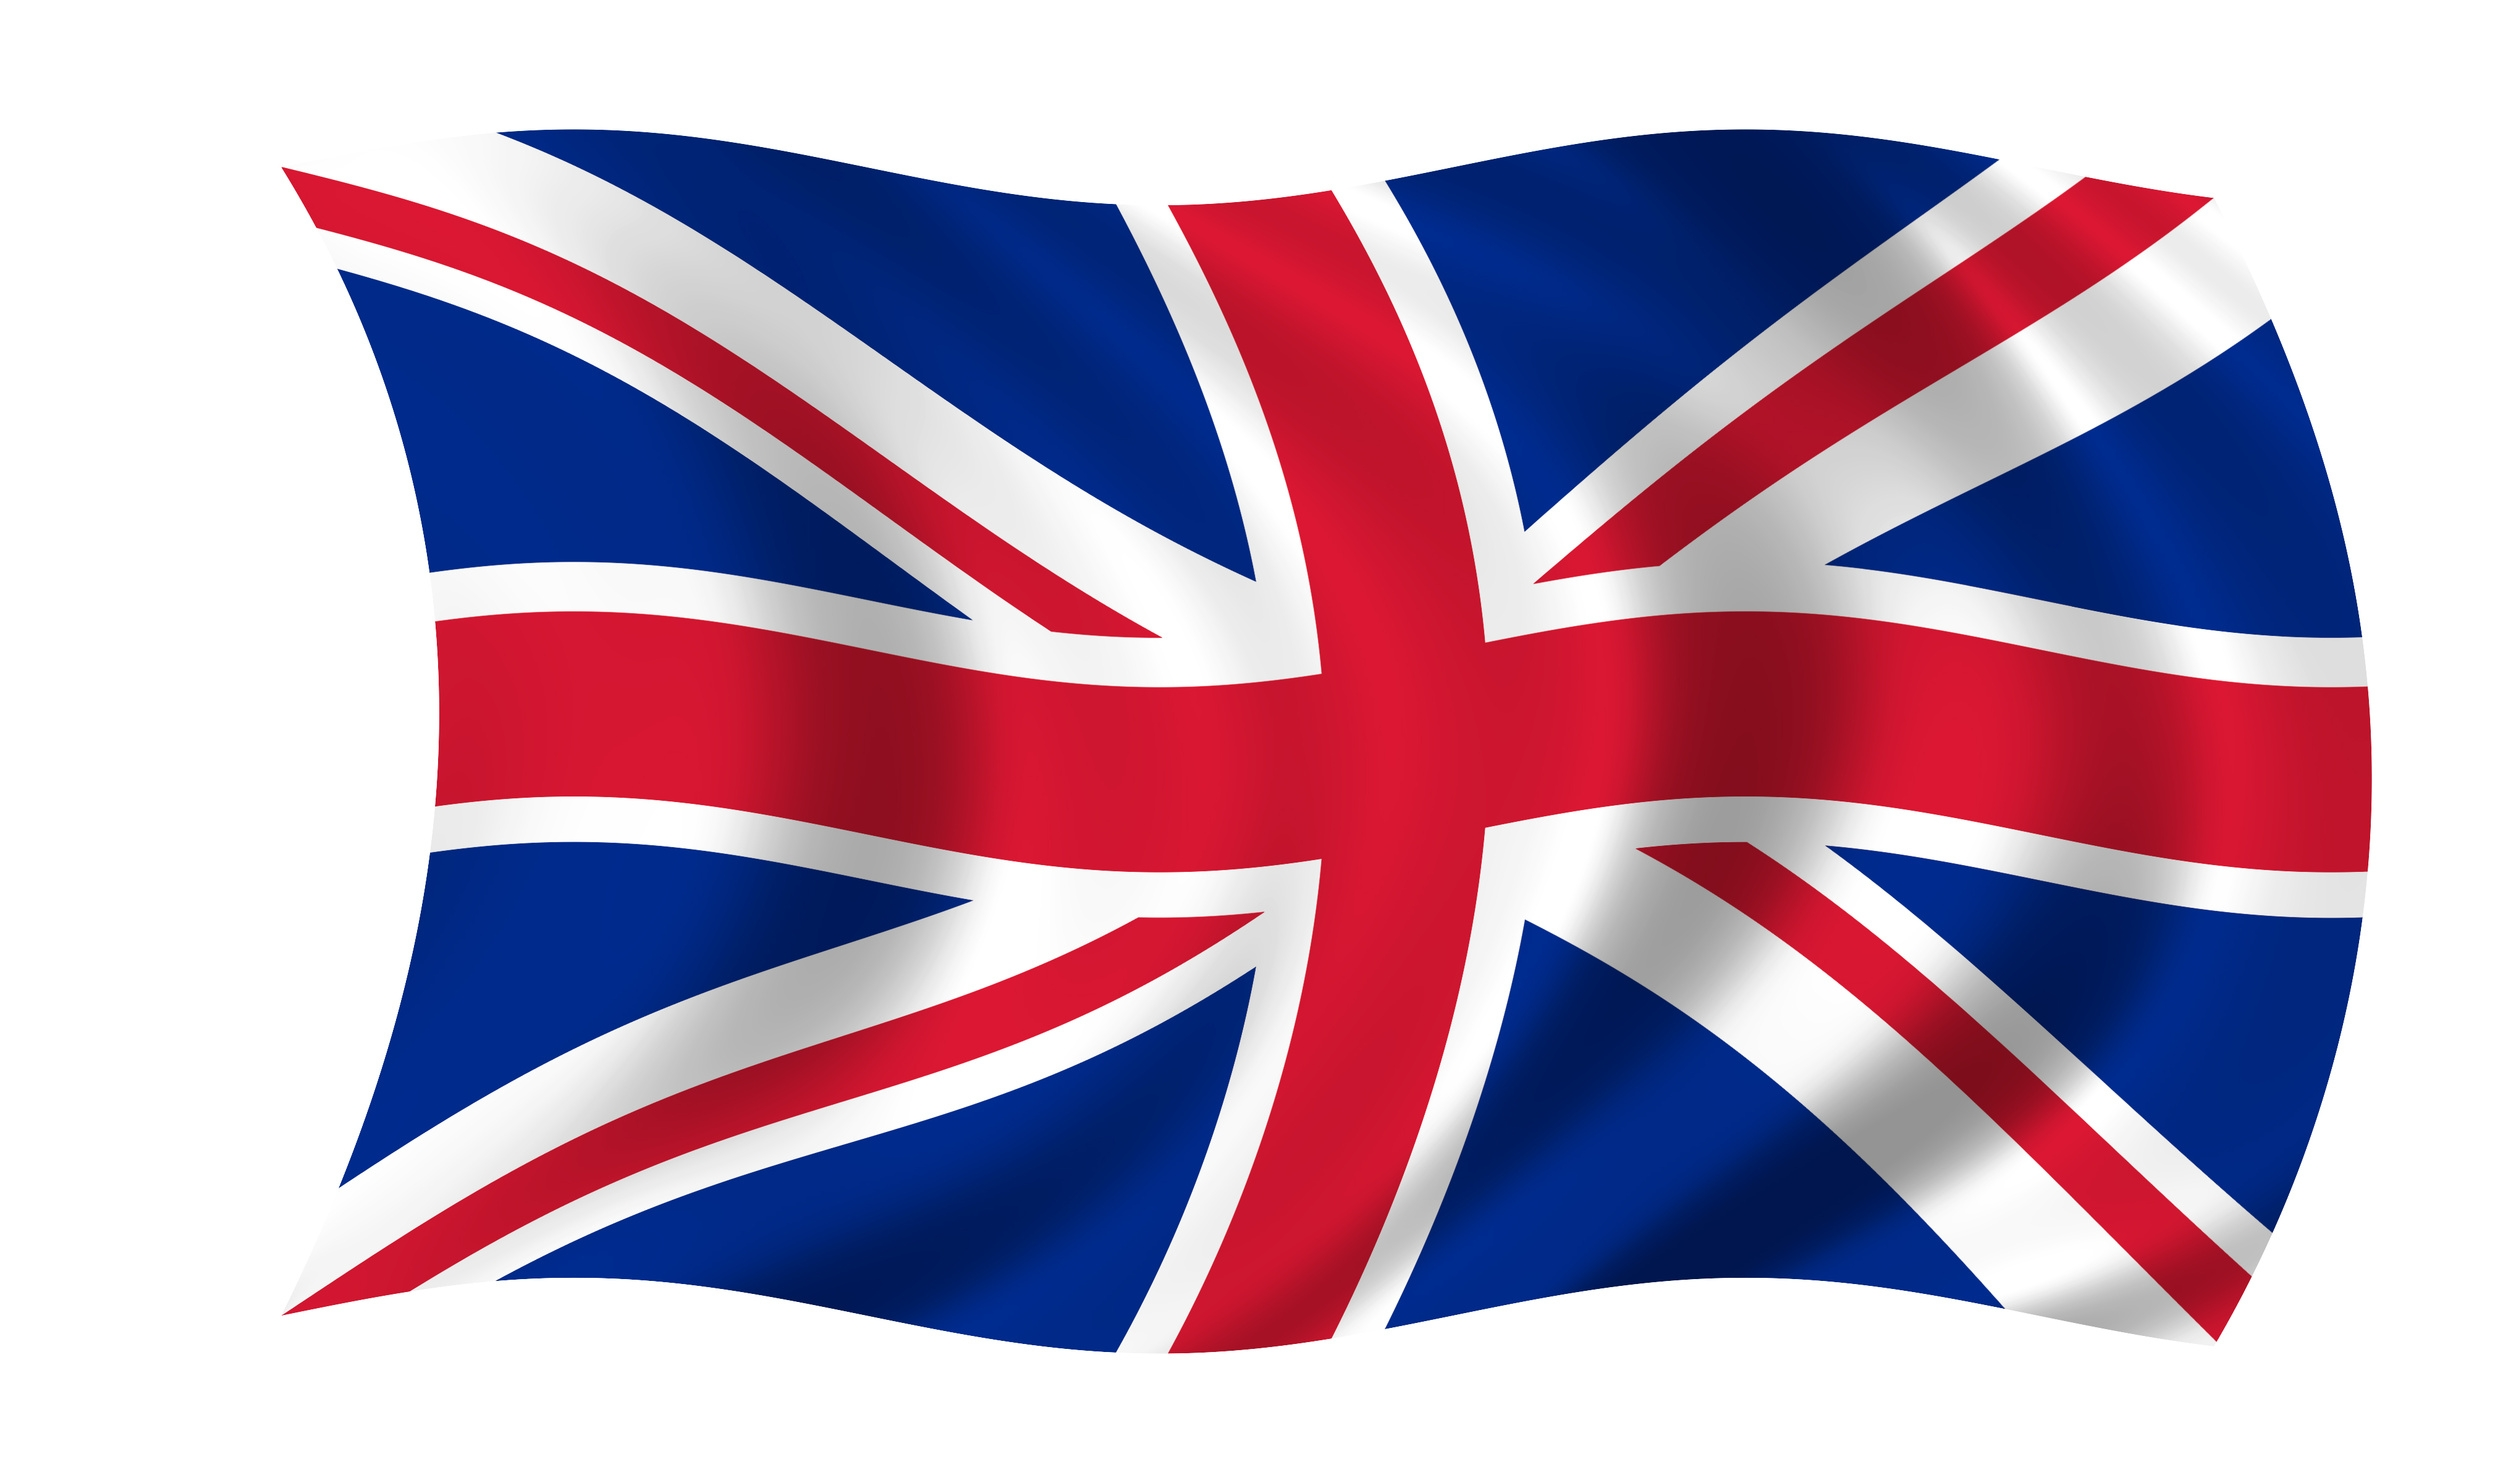 British Flag Clip Art - Cliparts.co